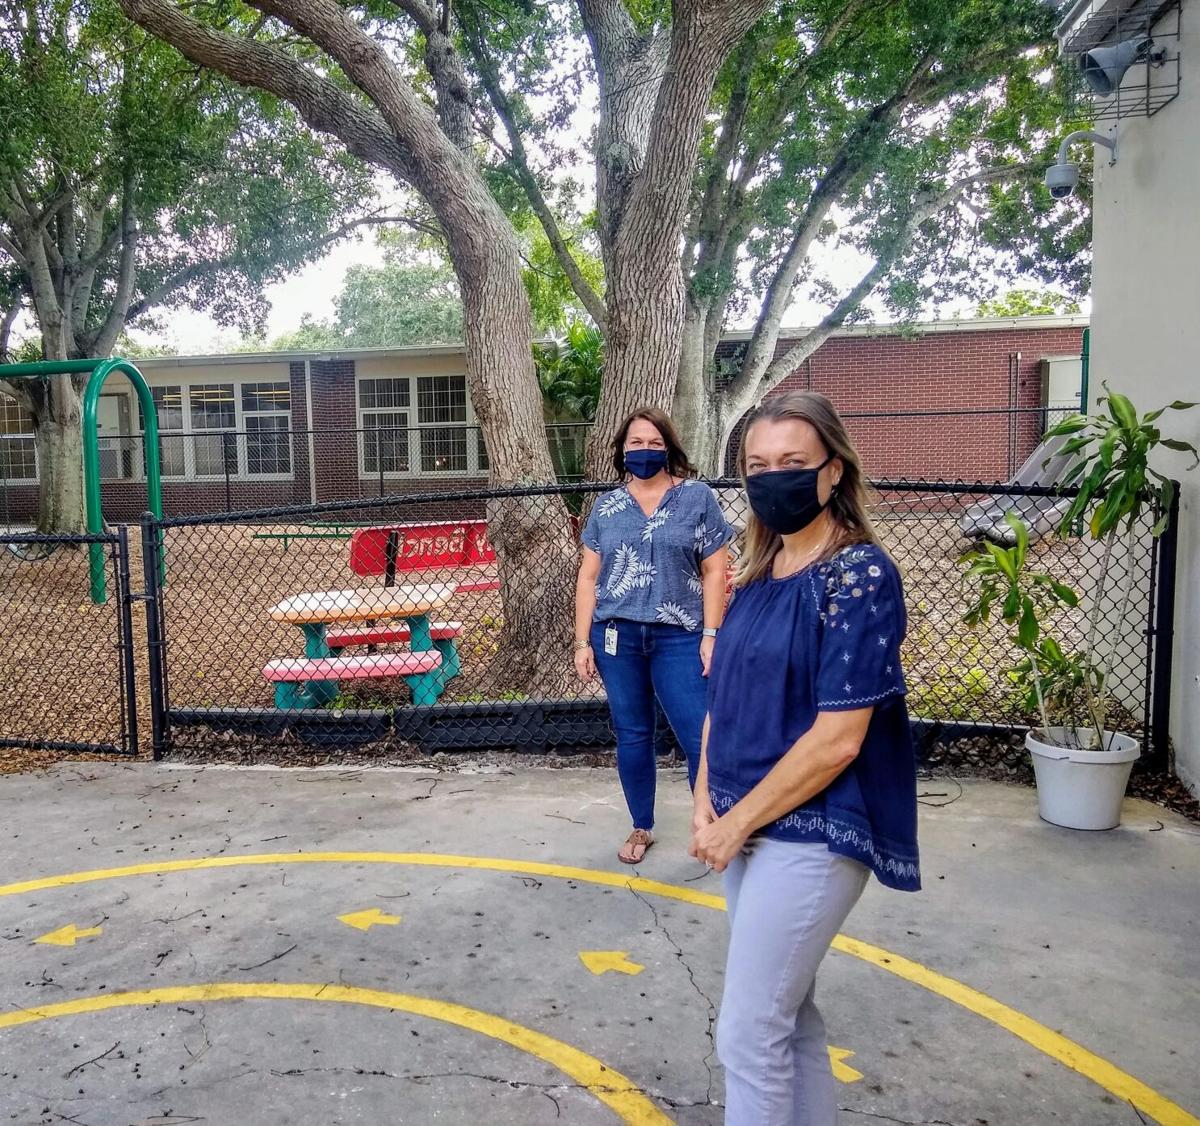 With all their hearts: Largo teachers go extra mile for student with heart condition